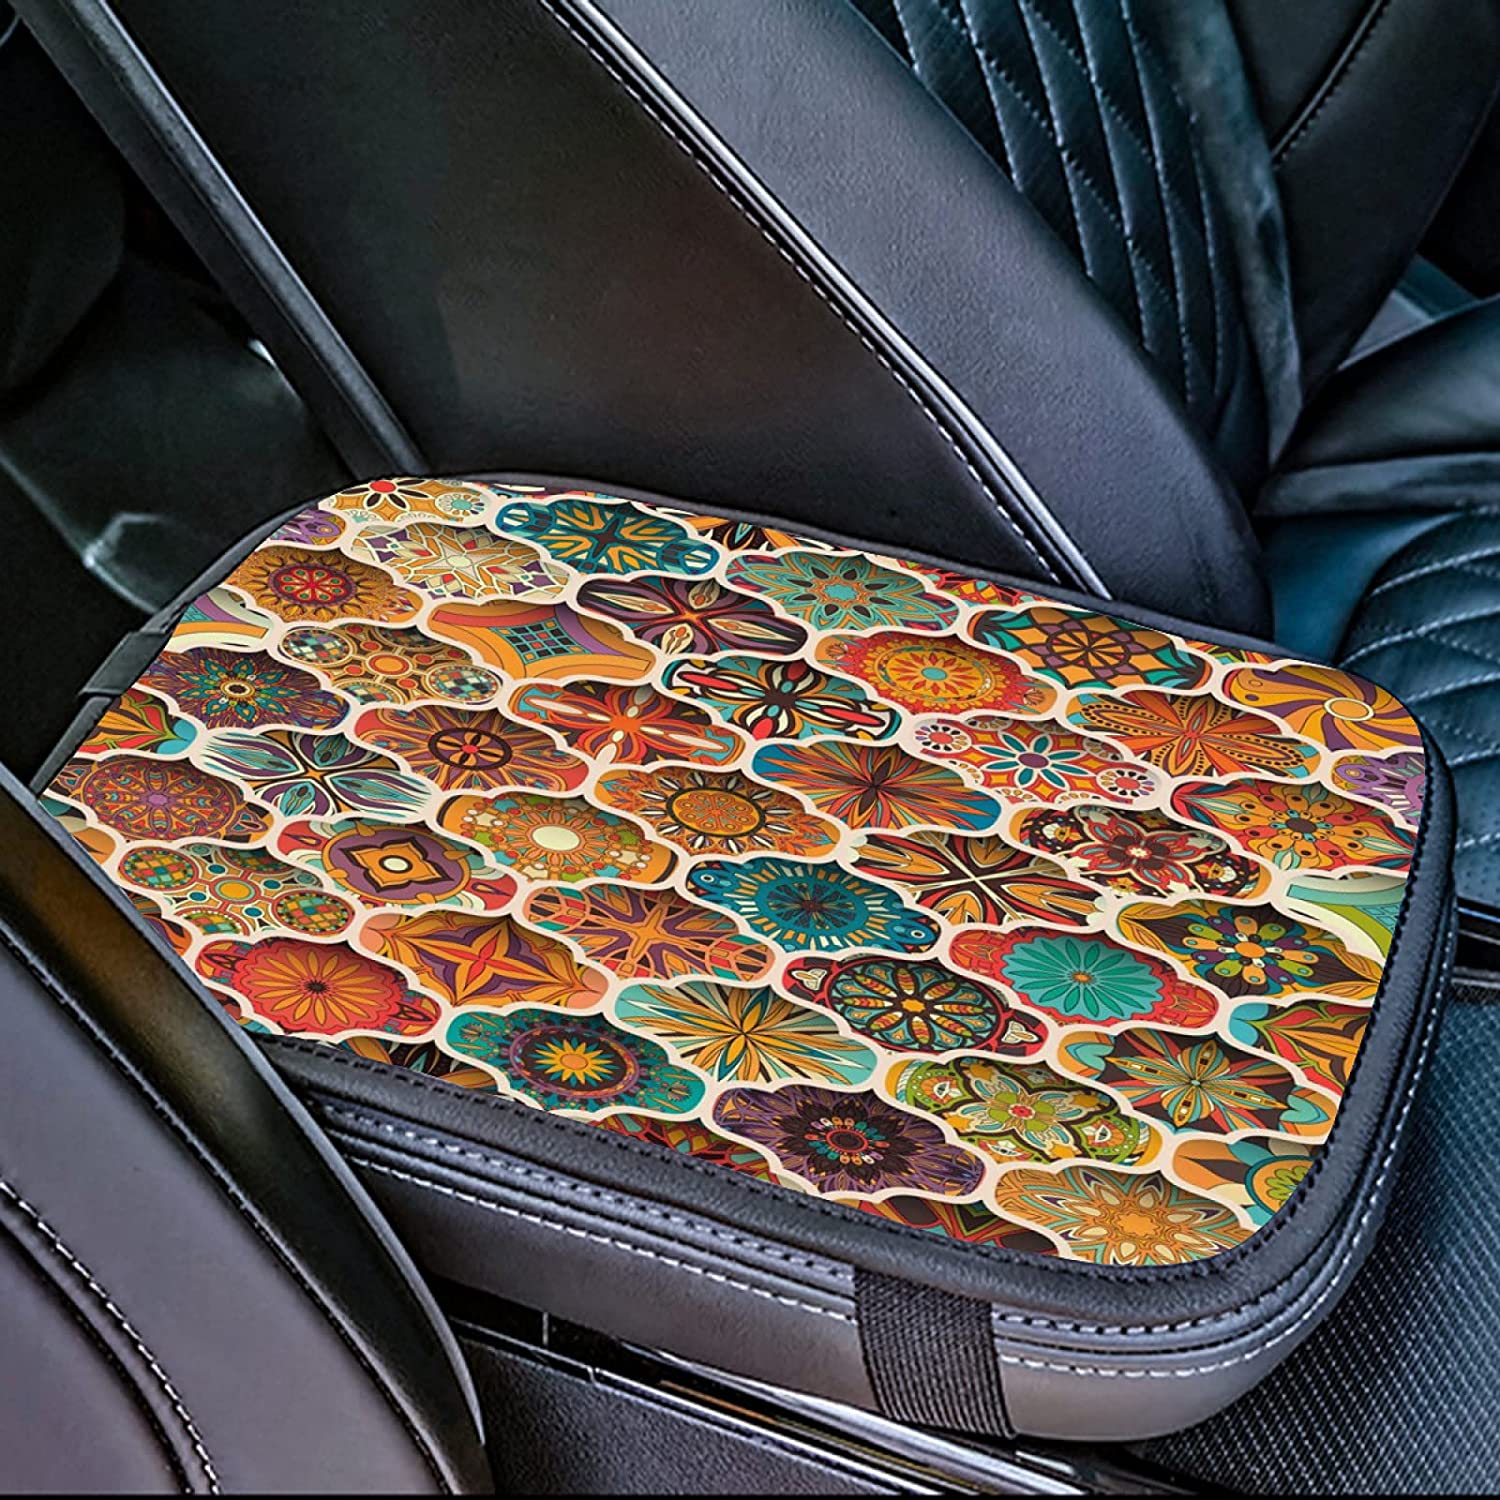 OcuteO Memphis Mall Sea Stars and Shells On Wooden Fees free Car Console Center Ar Teal